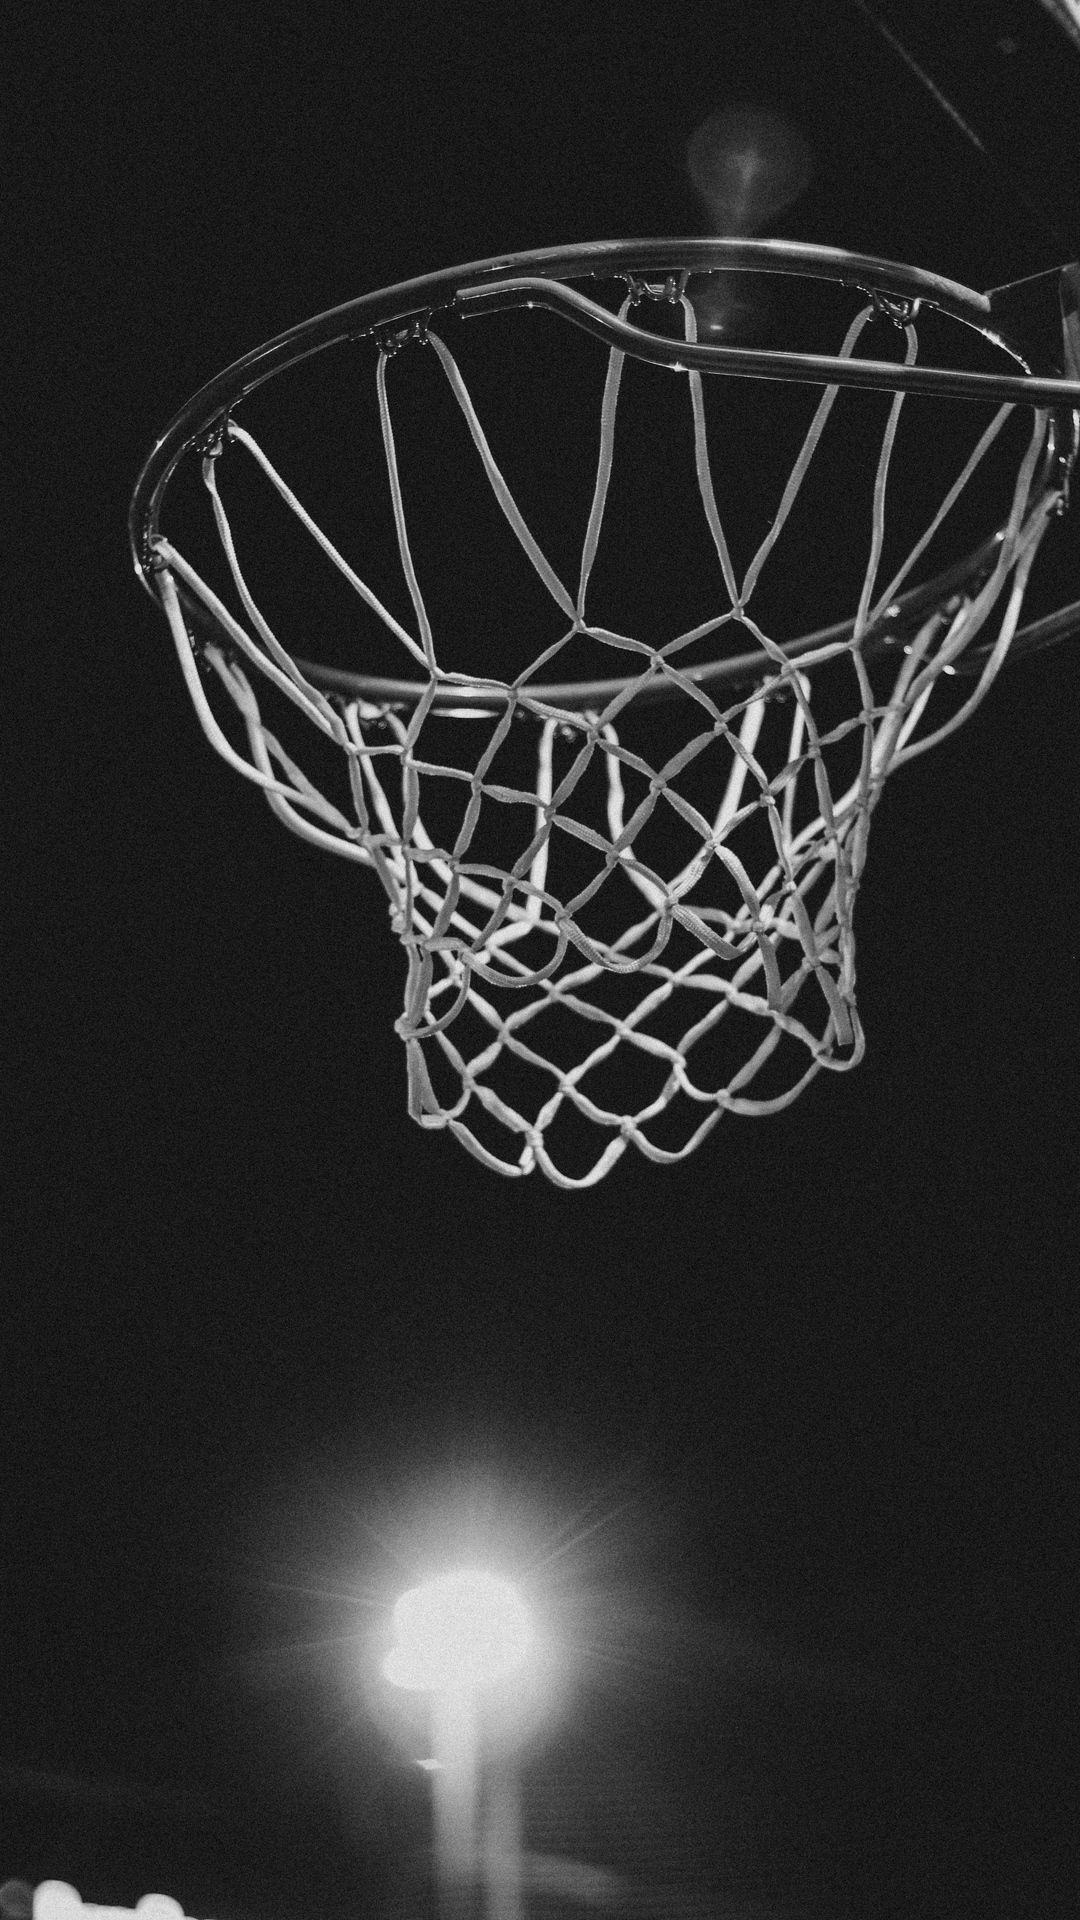 Basketball Images Hupages Download Iphone Wallpapers Basketball Ring Basketball Hoop Basketball